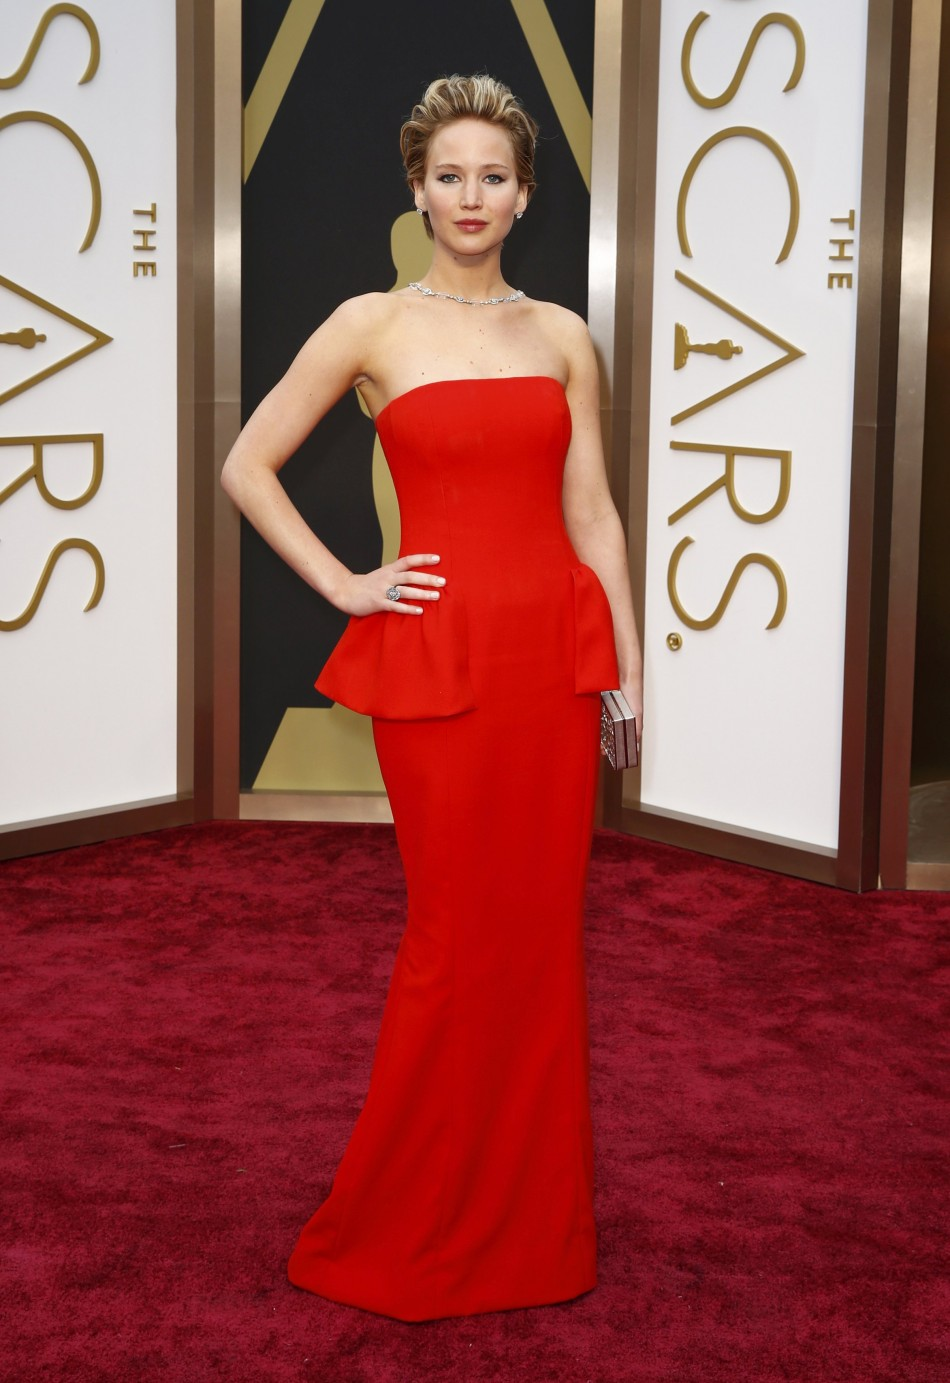 81a3a4bfa What They Wore - Academy Awards Oscars 2014